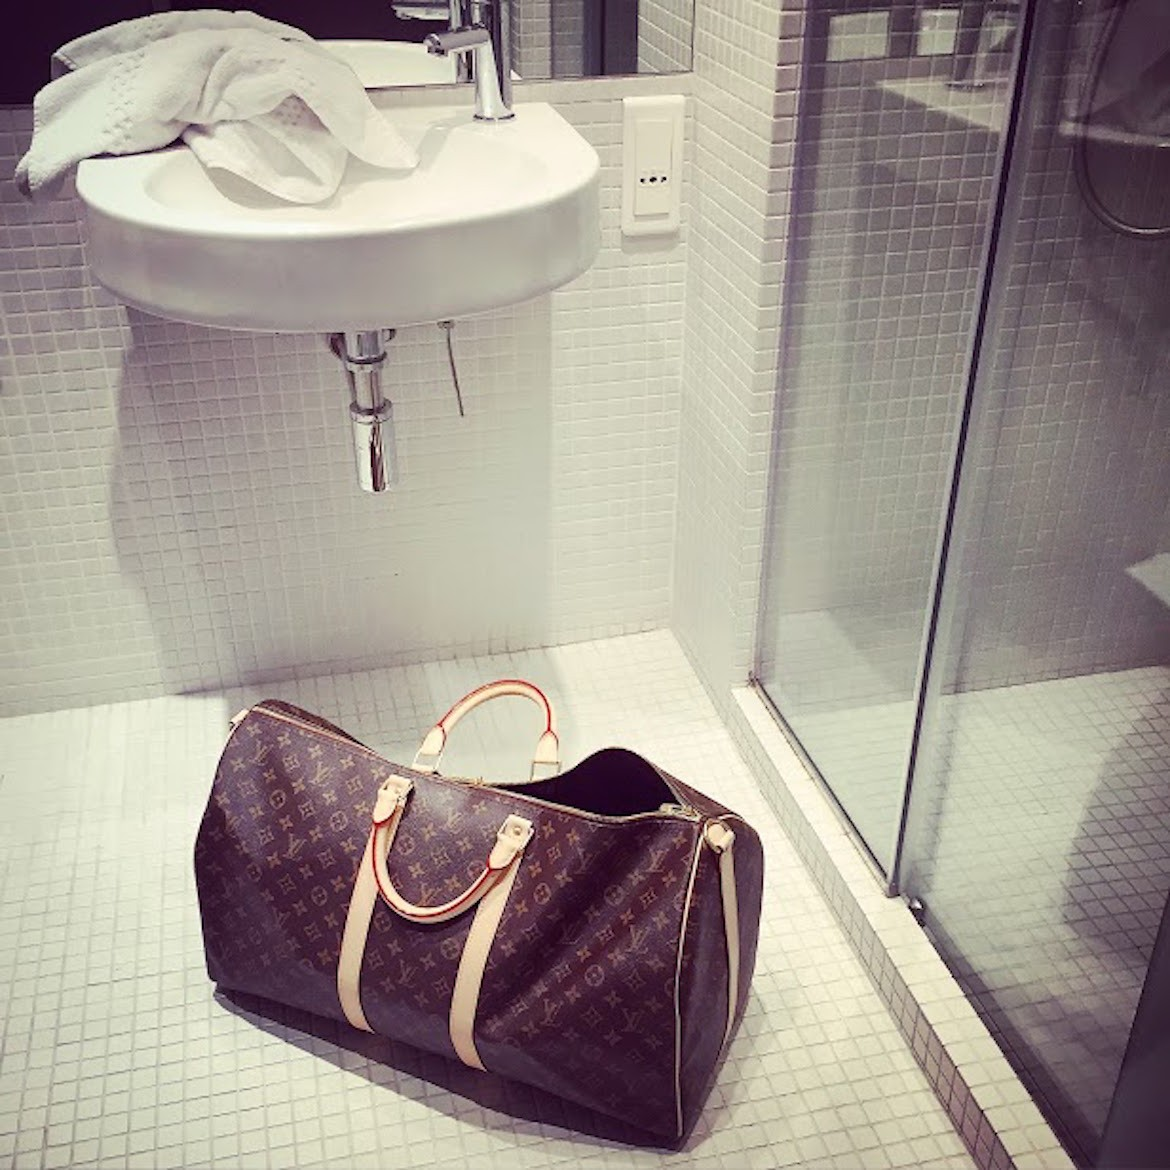 A classic Louis Vuitton Keepall in a bathroom at Periscope Hotel, Kolonaki